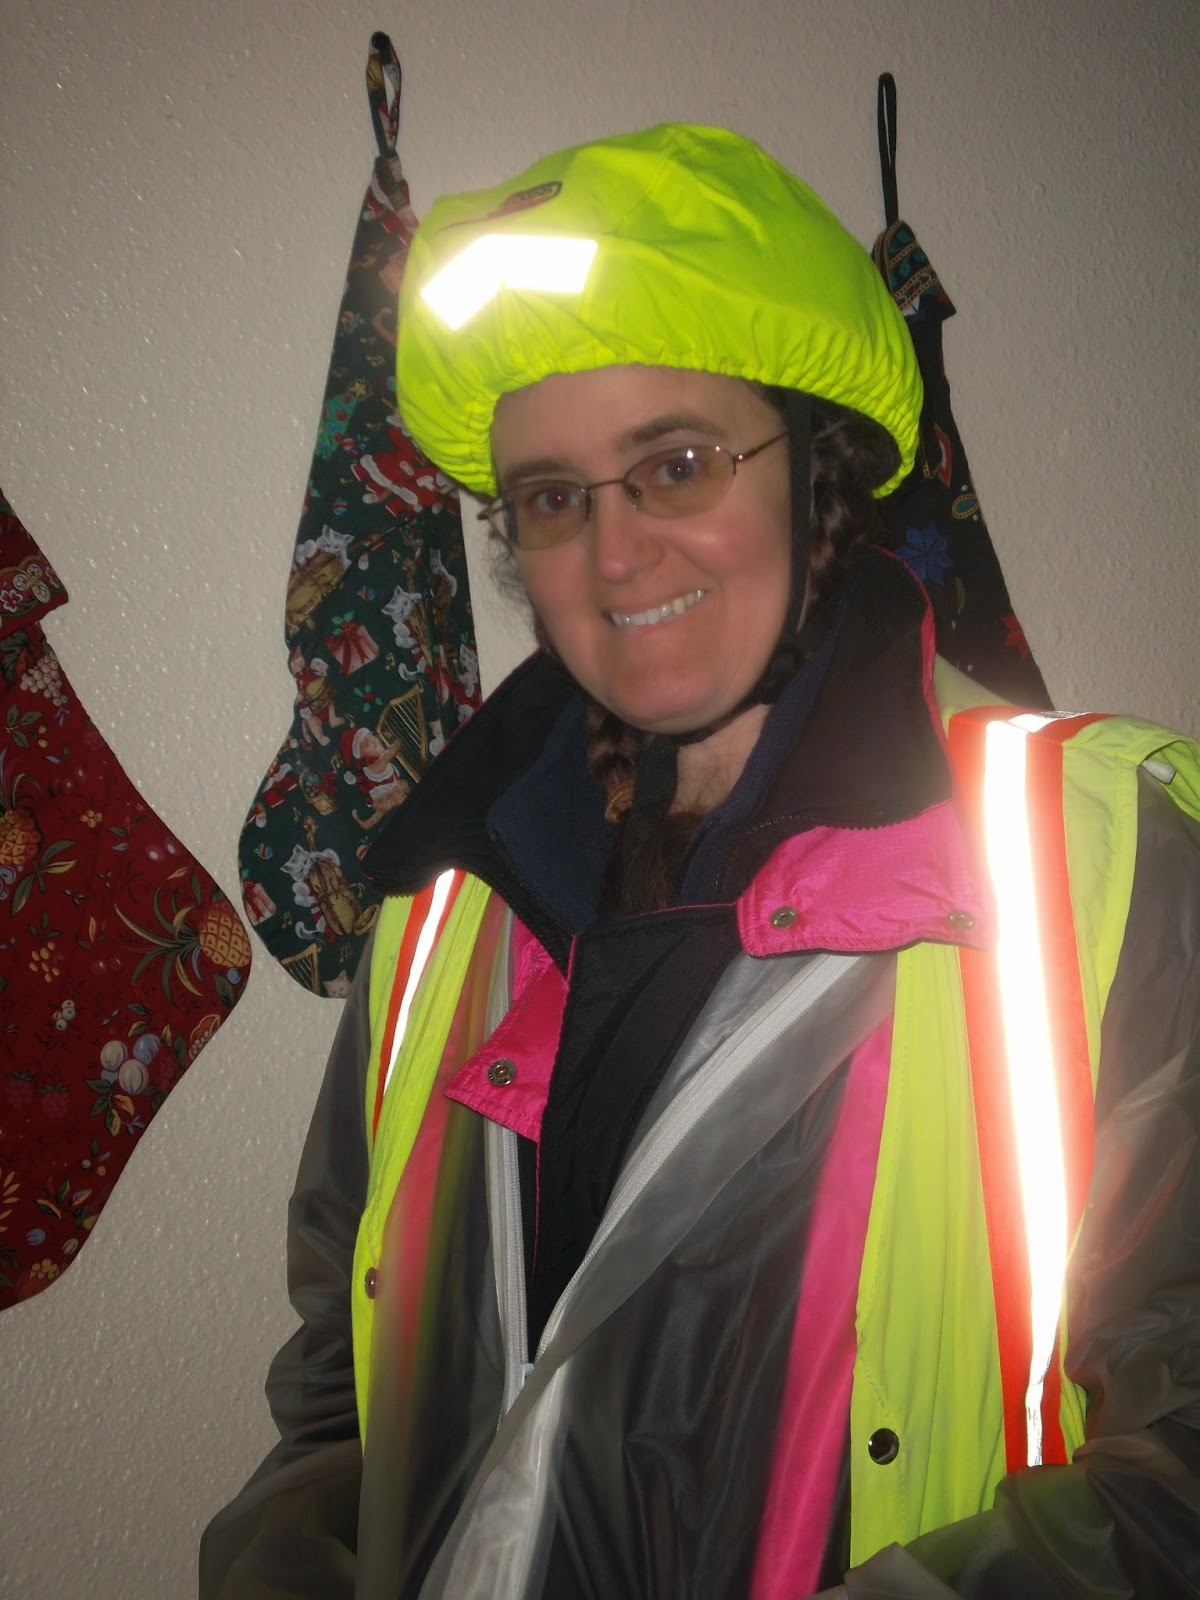 Cynthia M. Parkhill in bright-green bicycle helmet cover, reflective vest, white-clear plastic rain jacket over black jacket and blue vest.